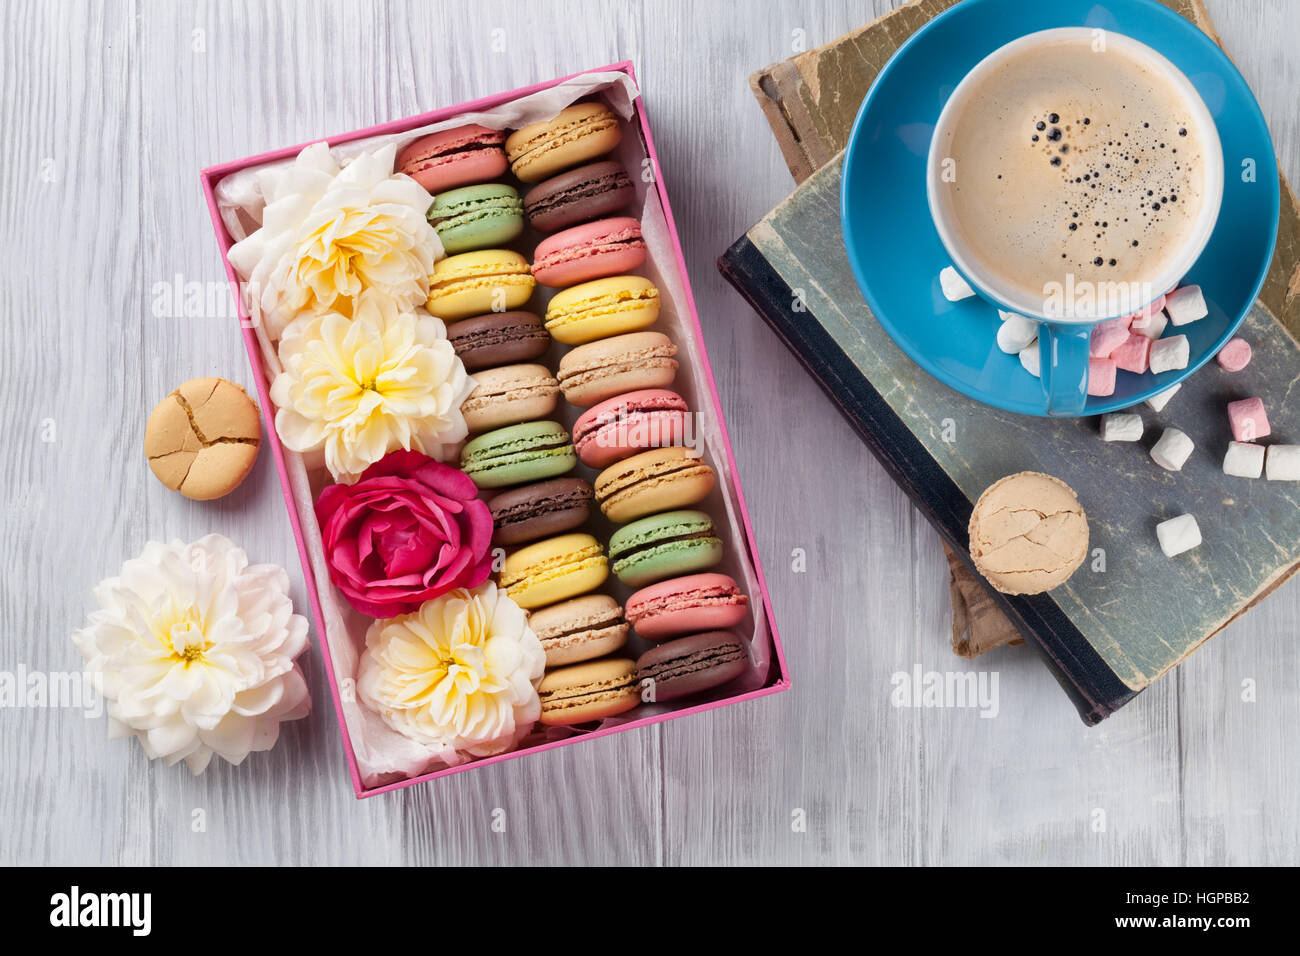 Colorful macaroons and coffee on wooden table. Sweet macarons in gift box and flowers. Top view Stock Photo